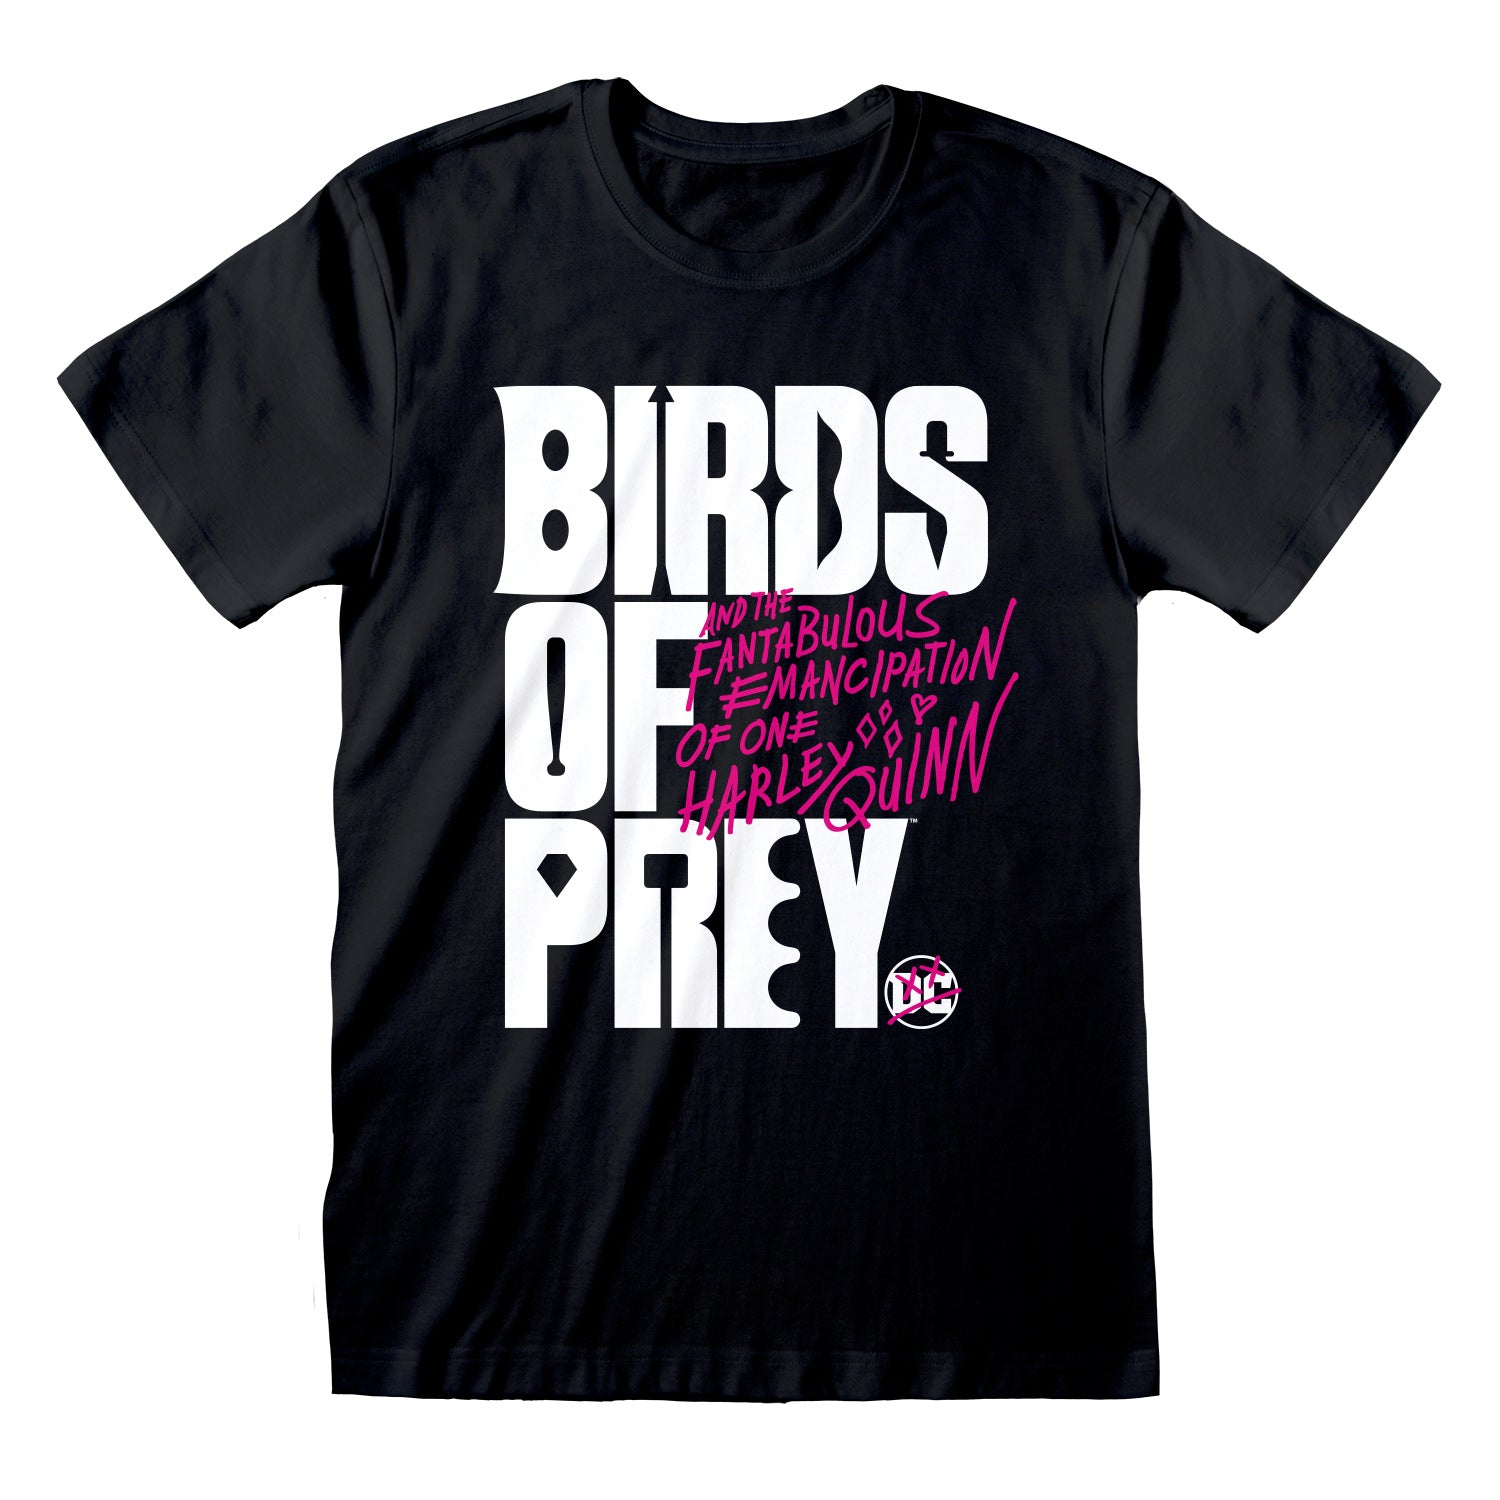 Logo T-shirt (DC - Birds Of Prey - Harley Quinn)